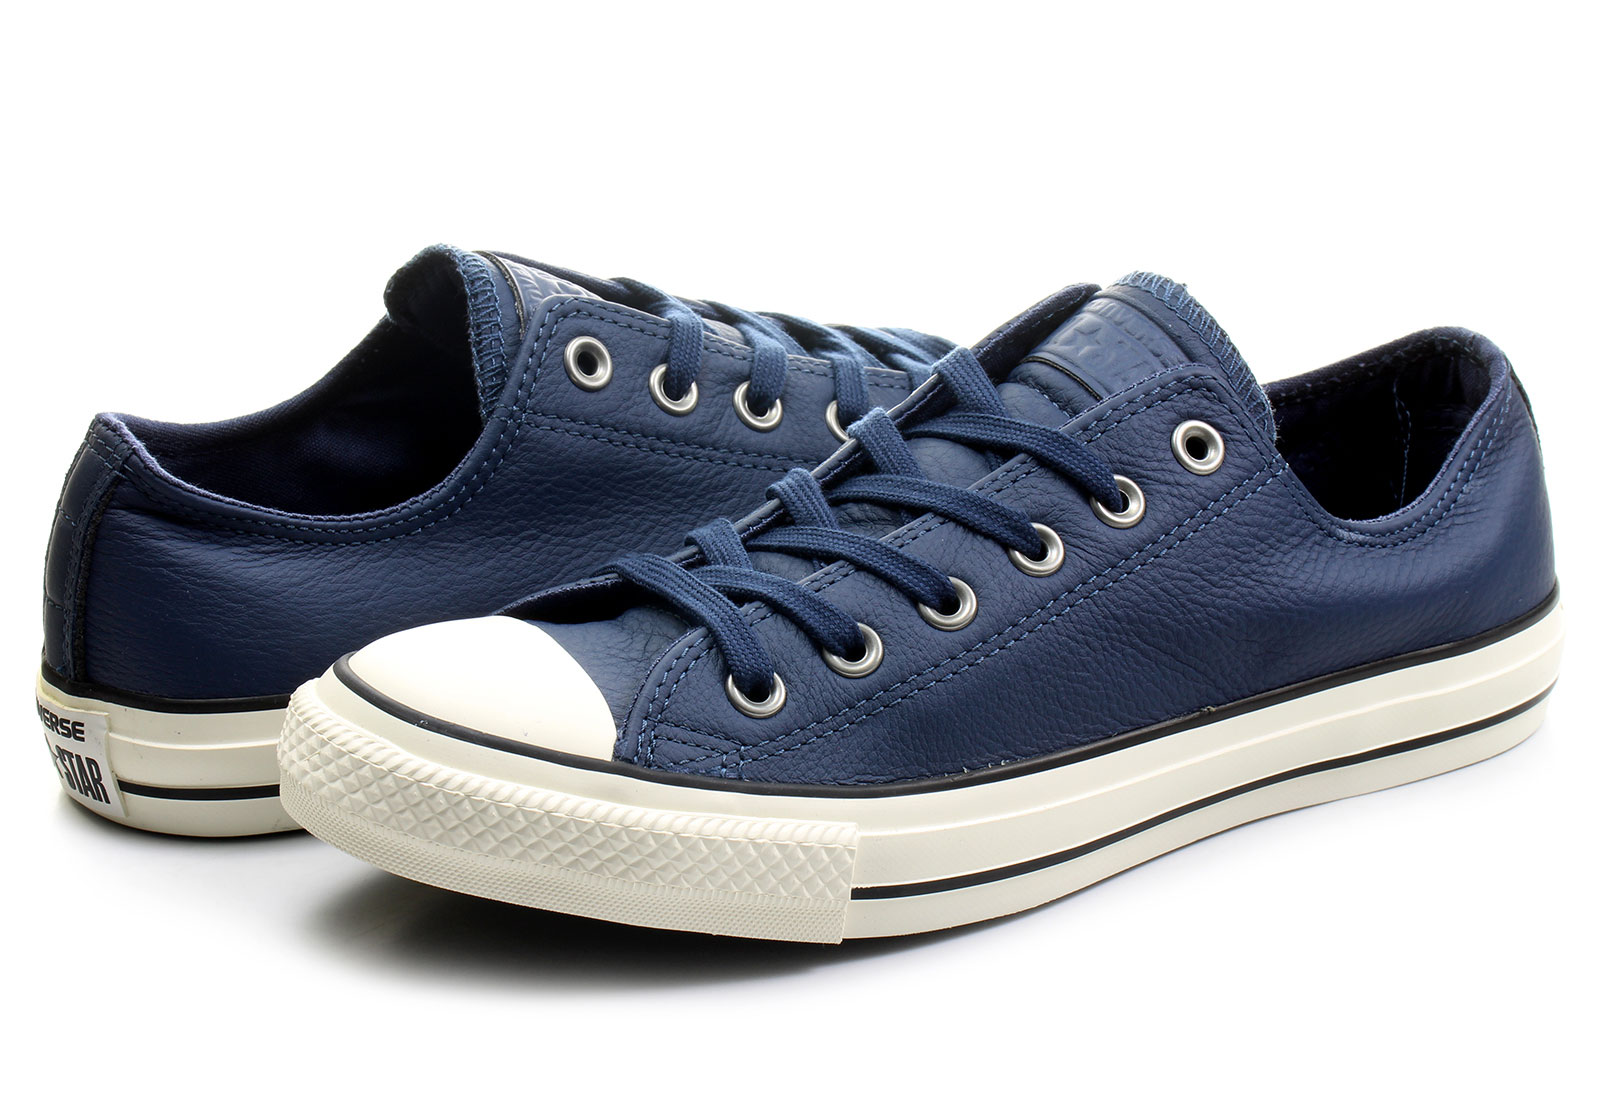 Converse Sneakers - Chuck Taylor All Star Leather Ox - 151115C ... 90b689060c